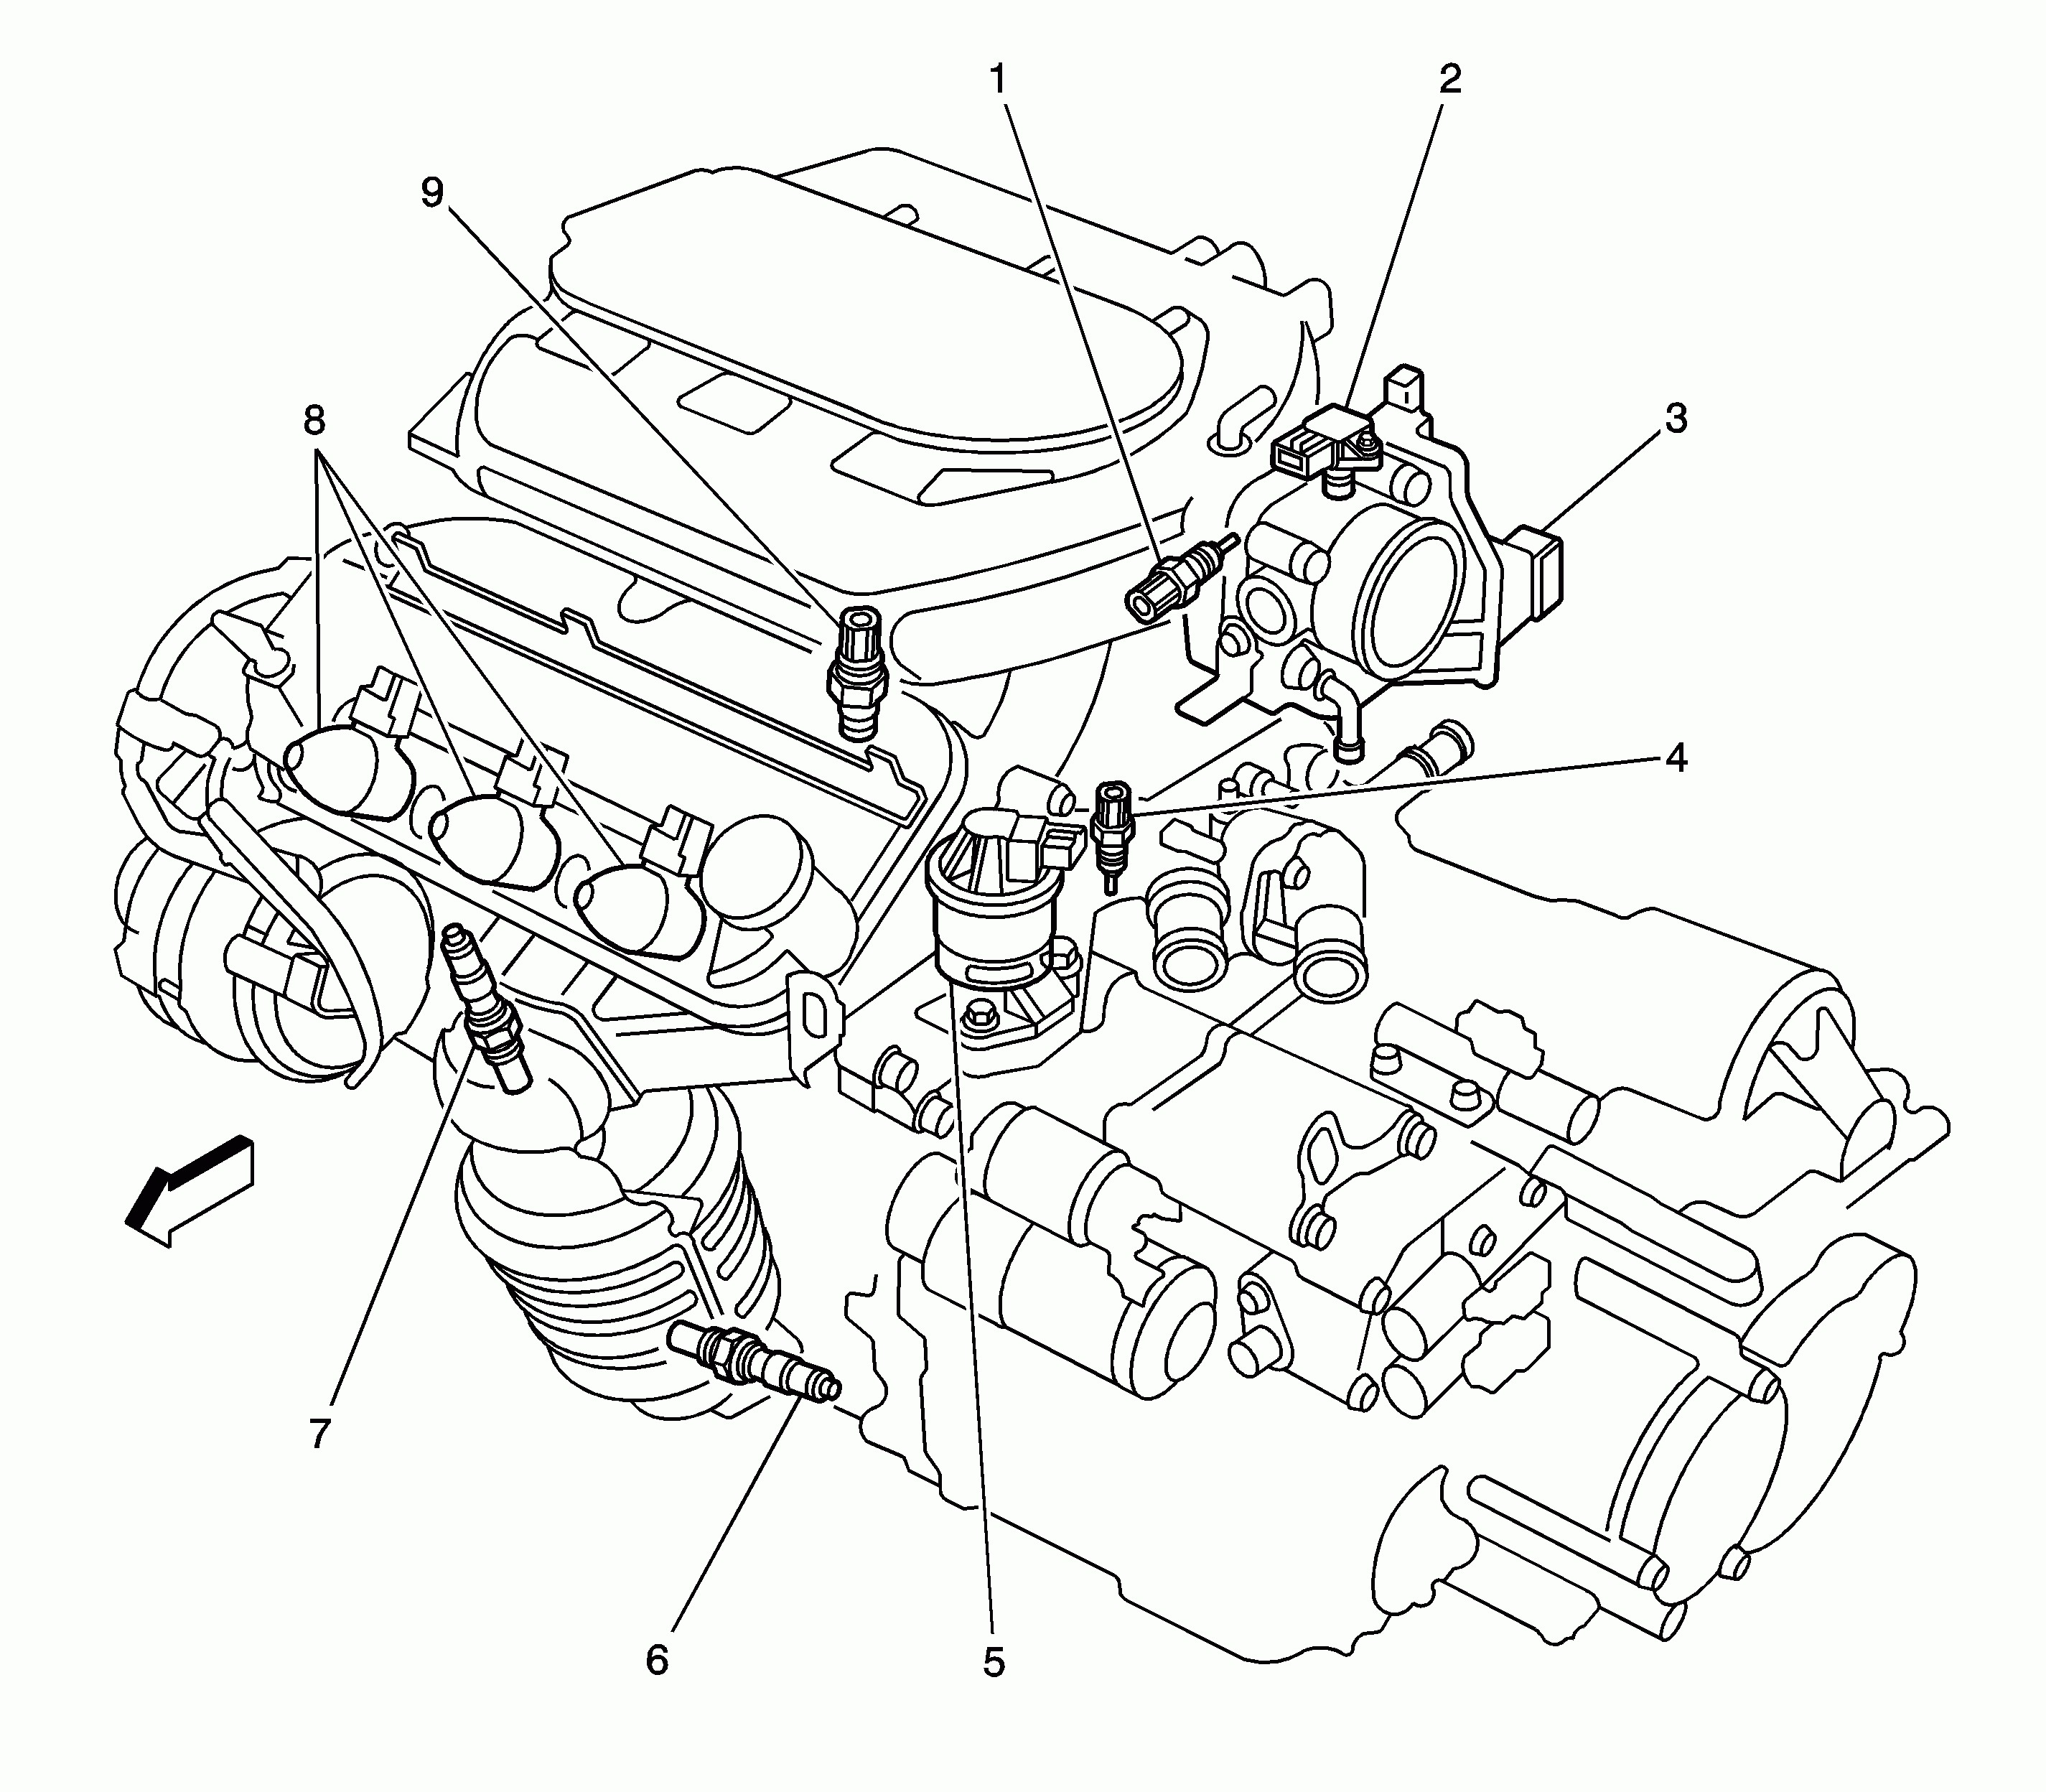 2001 saturn sl2 dohc engine diagram wiring diagram database rh 10 abujk nintendomonsen de